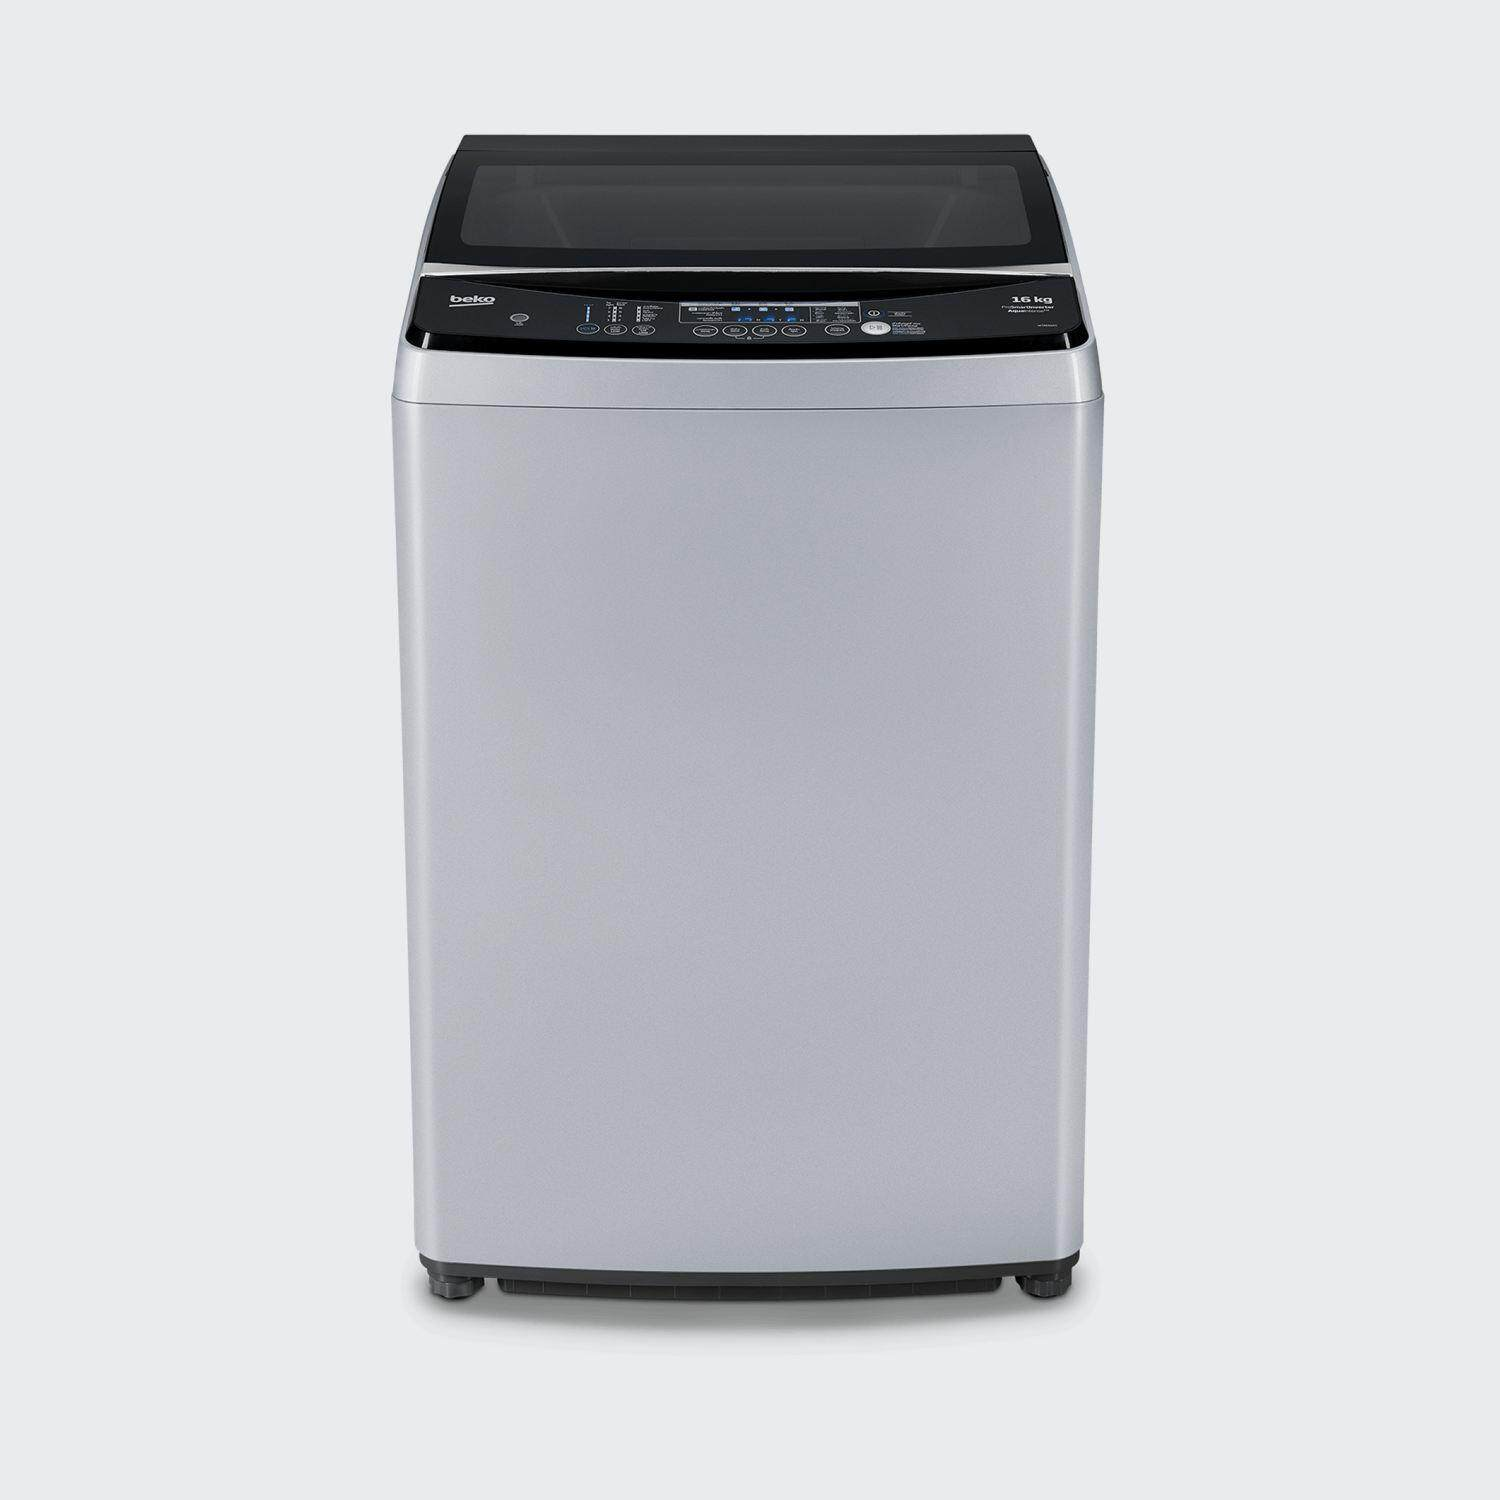 hight resolution of beko made in europe 18kg direct drive led display stainless steel top load washer